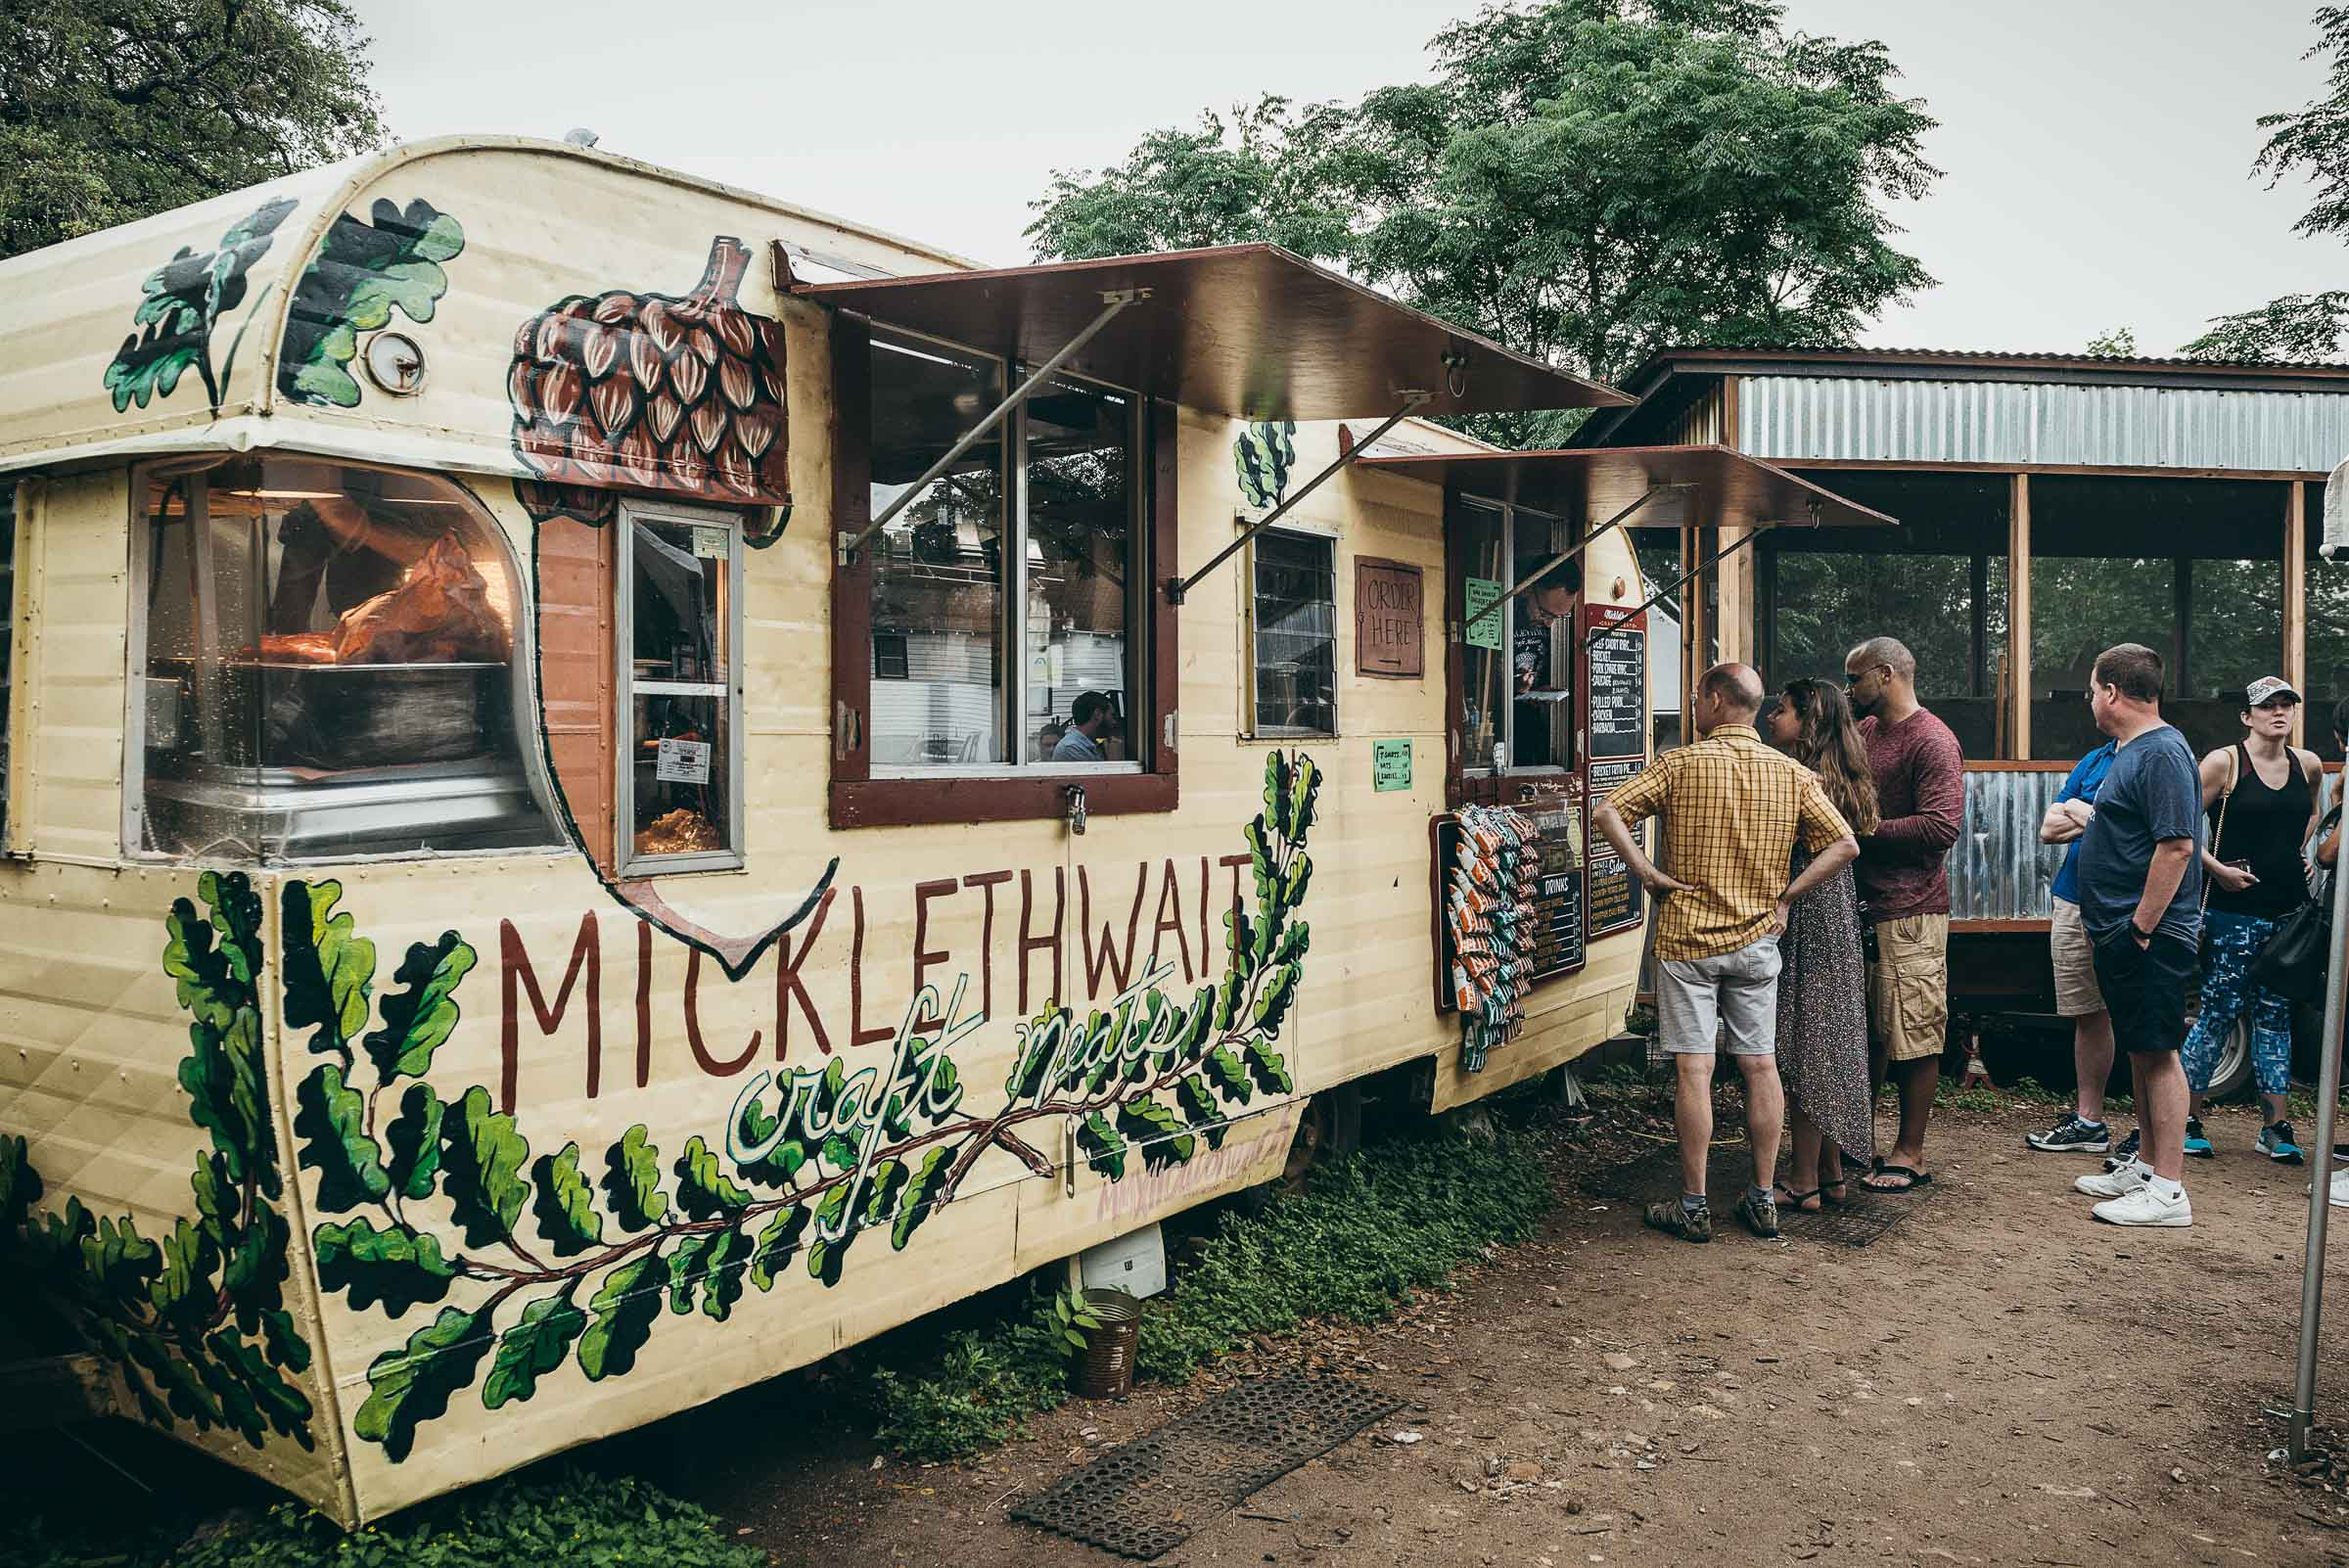 Mickelthwaites BBQ  trailer, with a line of hungry customers -East  Austin-TX.